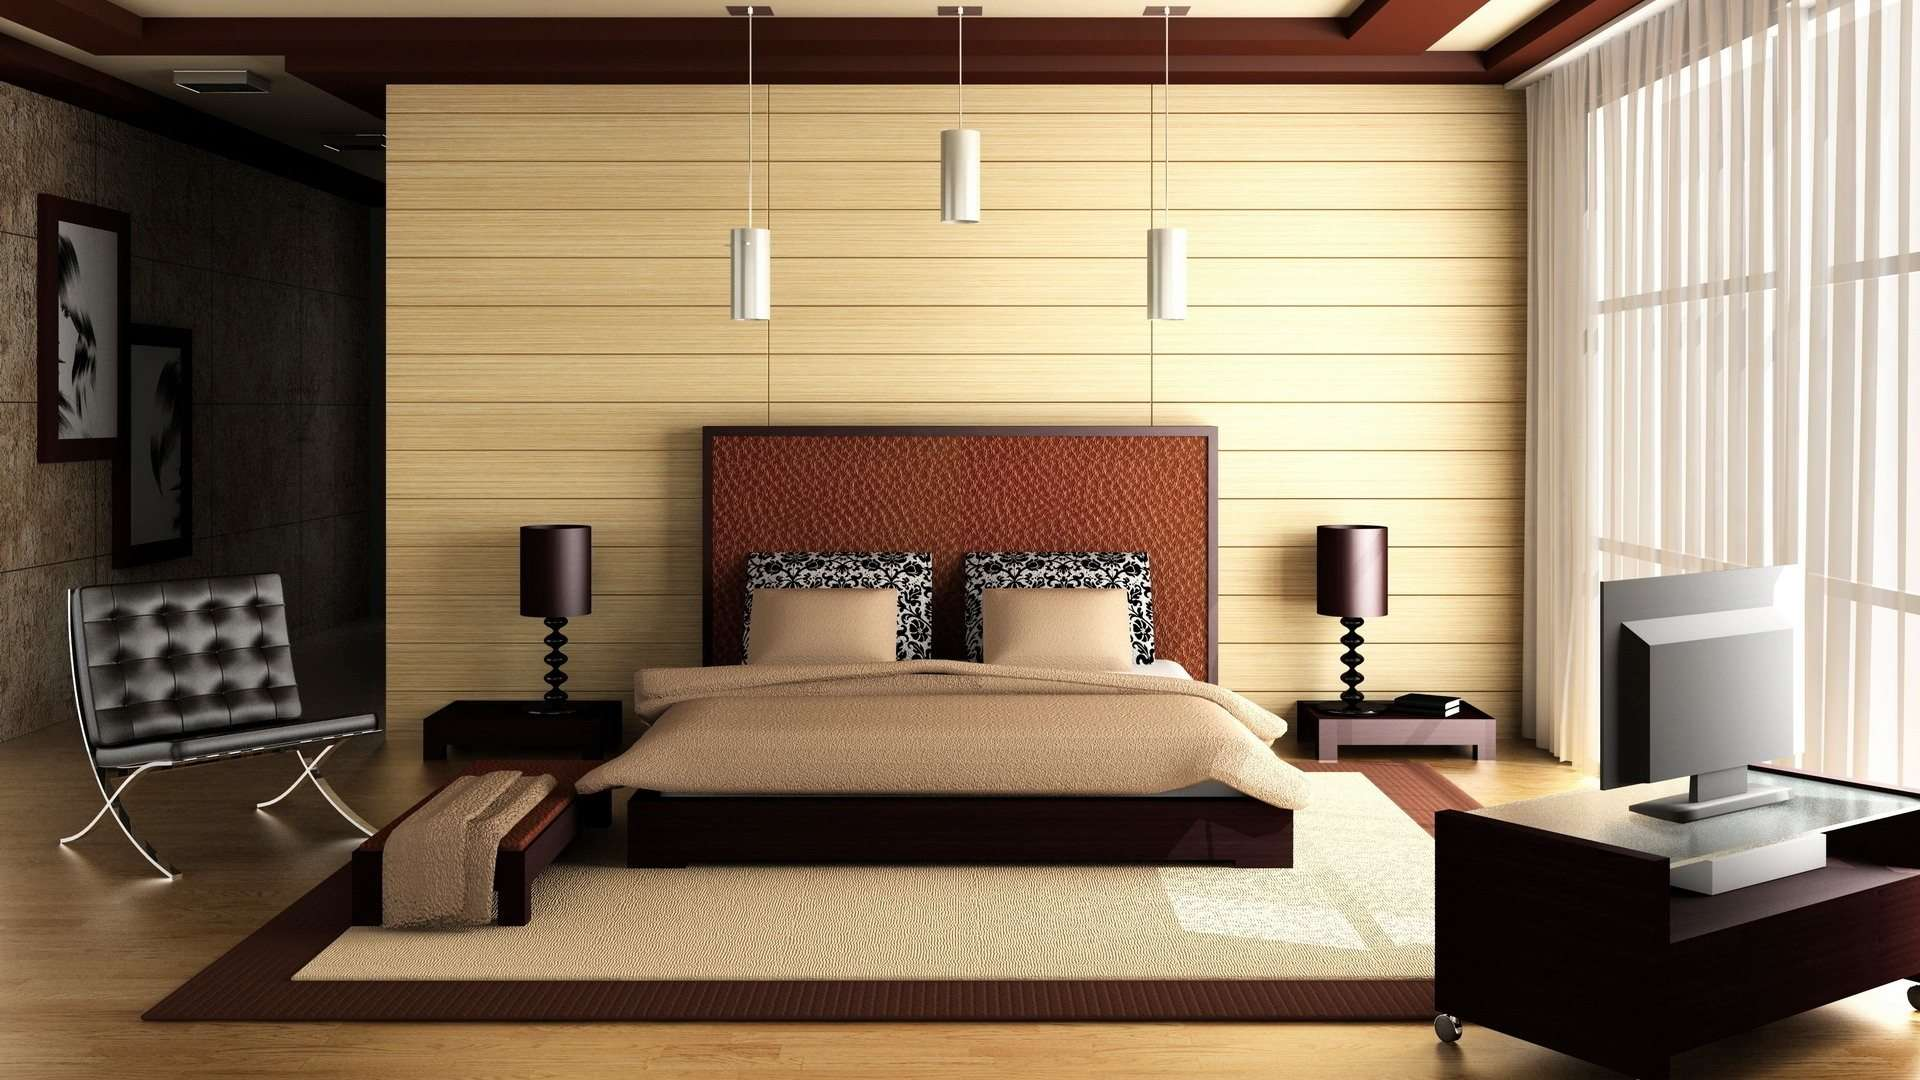 Luxury Bedroom with Double Bed